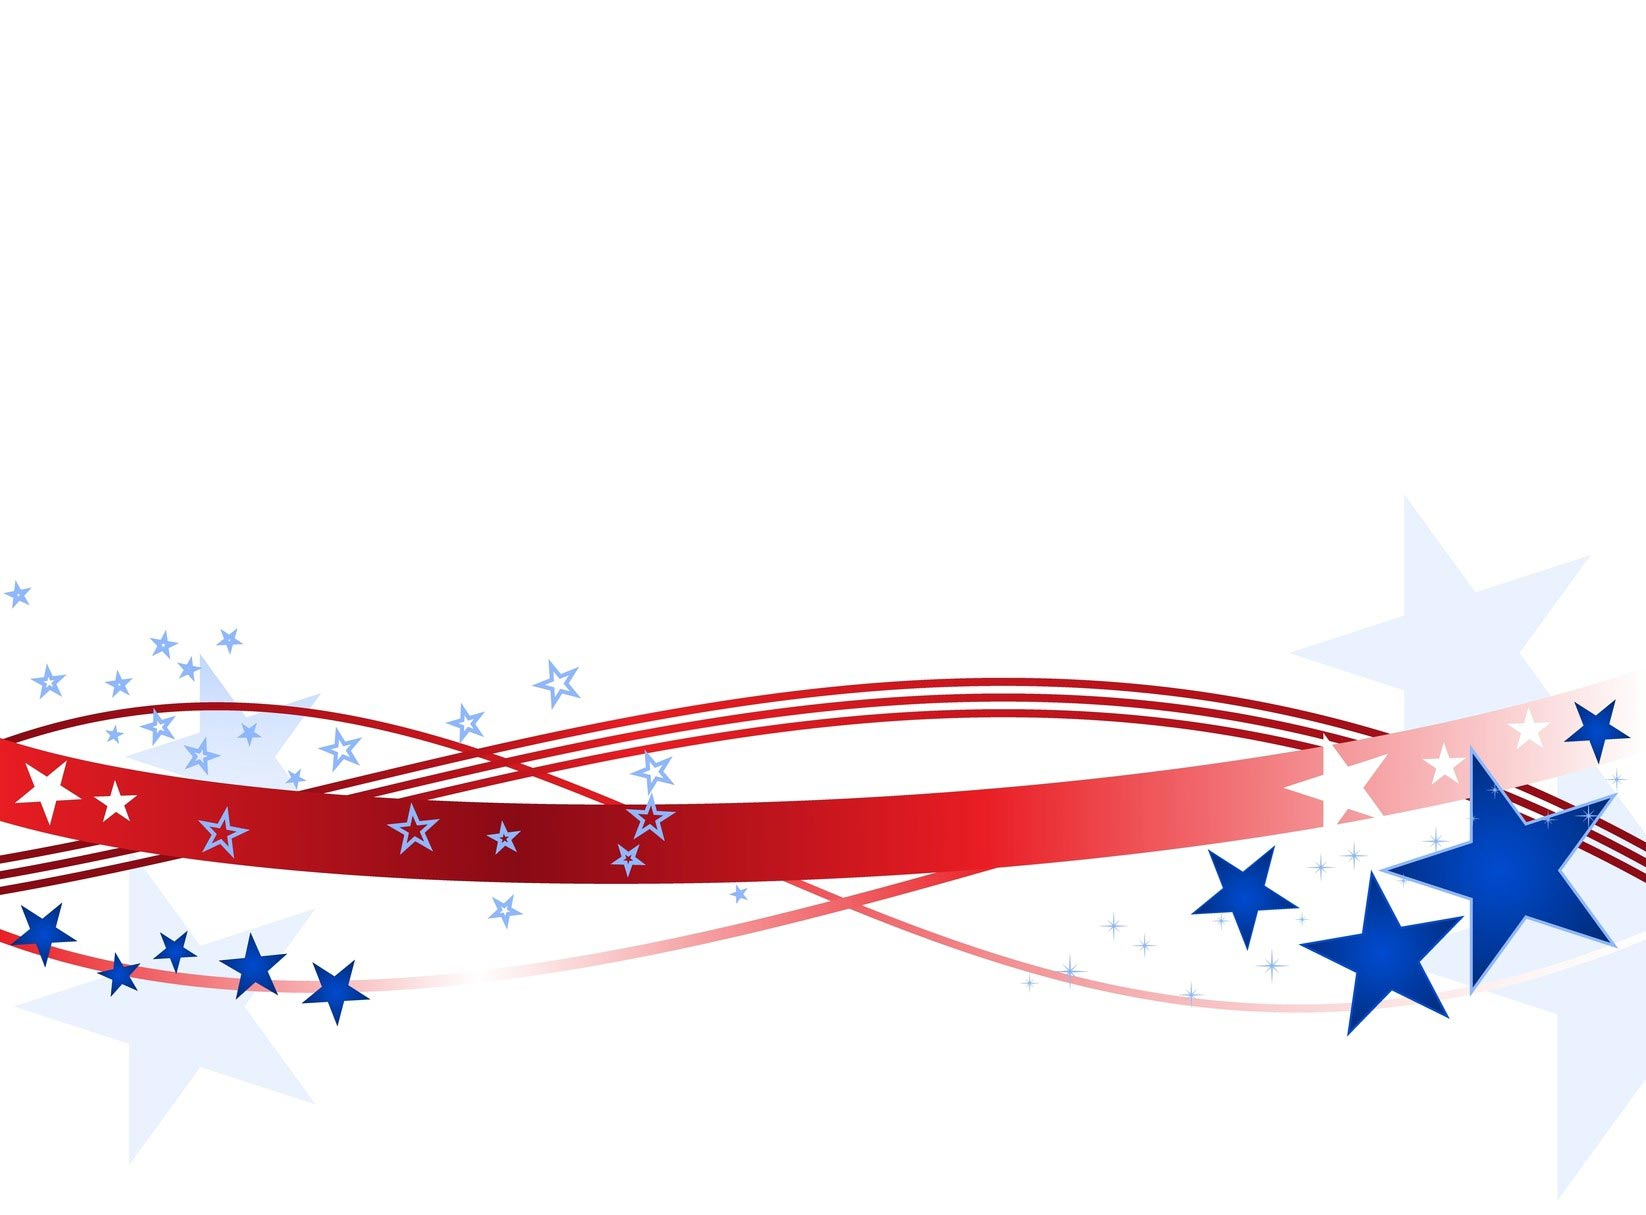 red white and blue banner clipart free download best red white and blue banner clipart on. Black Bedroom Furniture Sets. Home Design Ideas